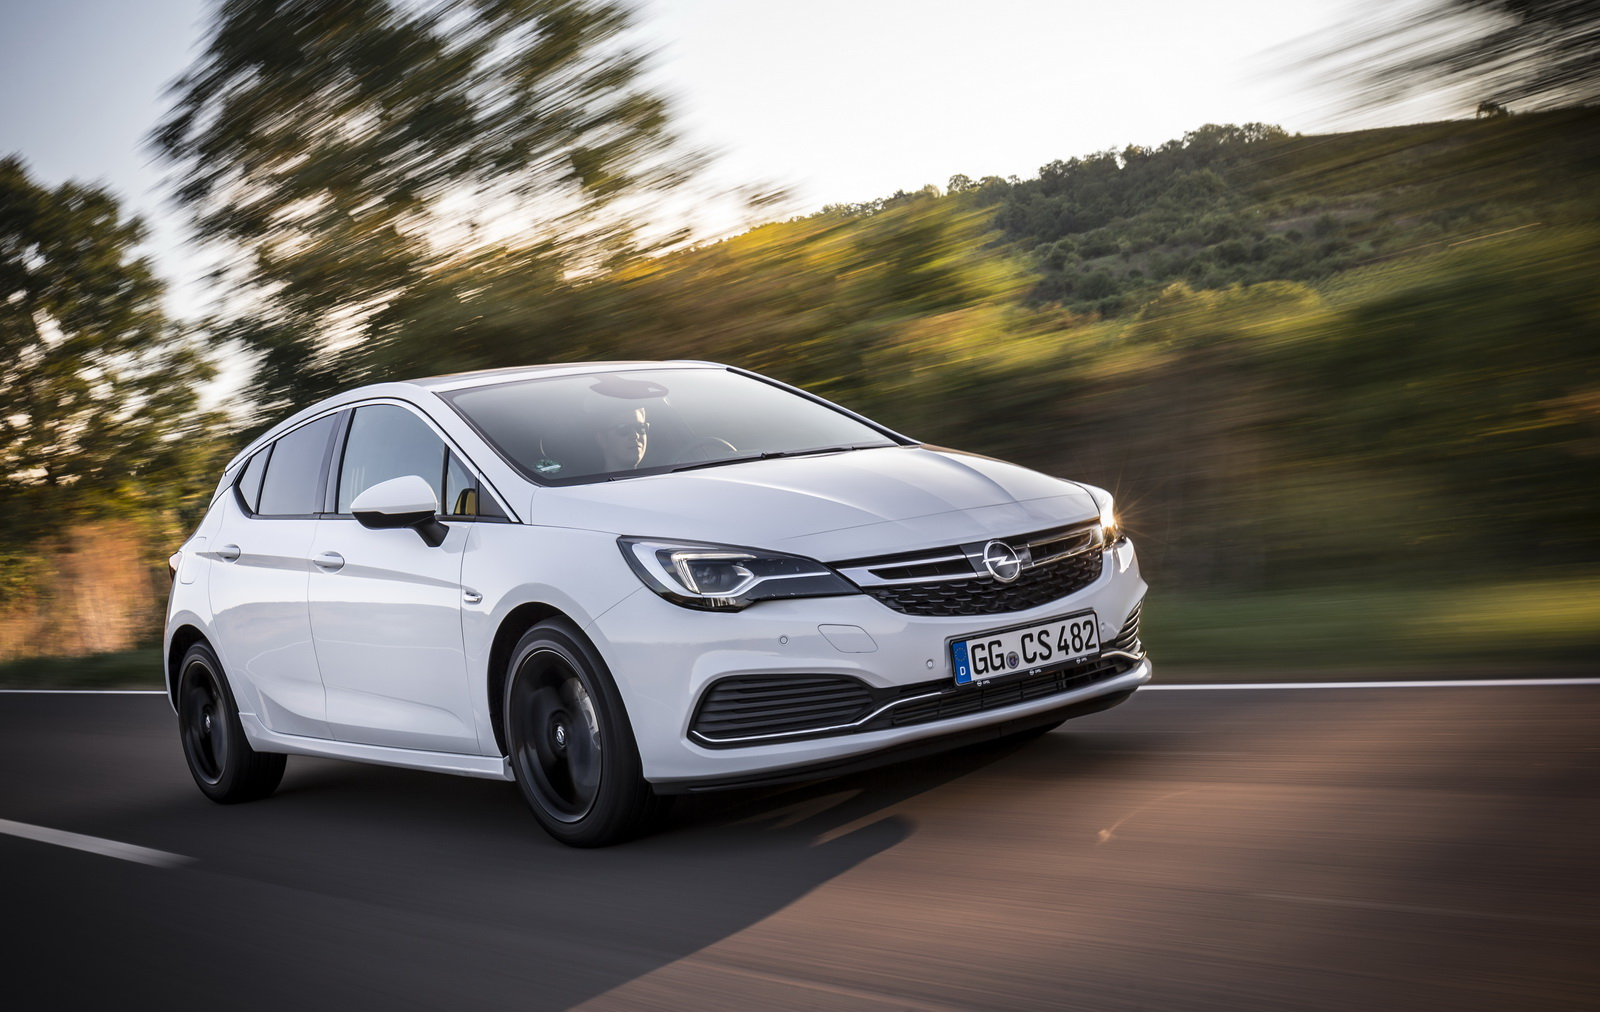 Opel Working On Astra Opc With 300 Hp From 1 6 Liter Turbo